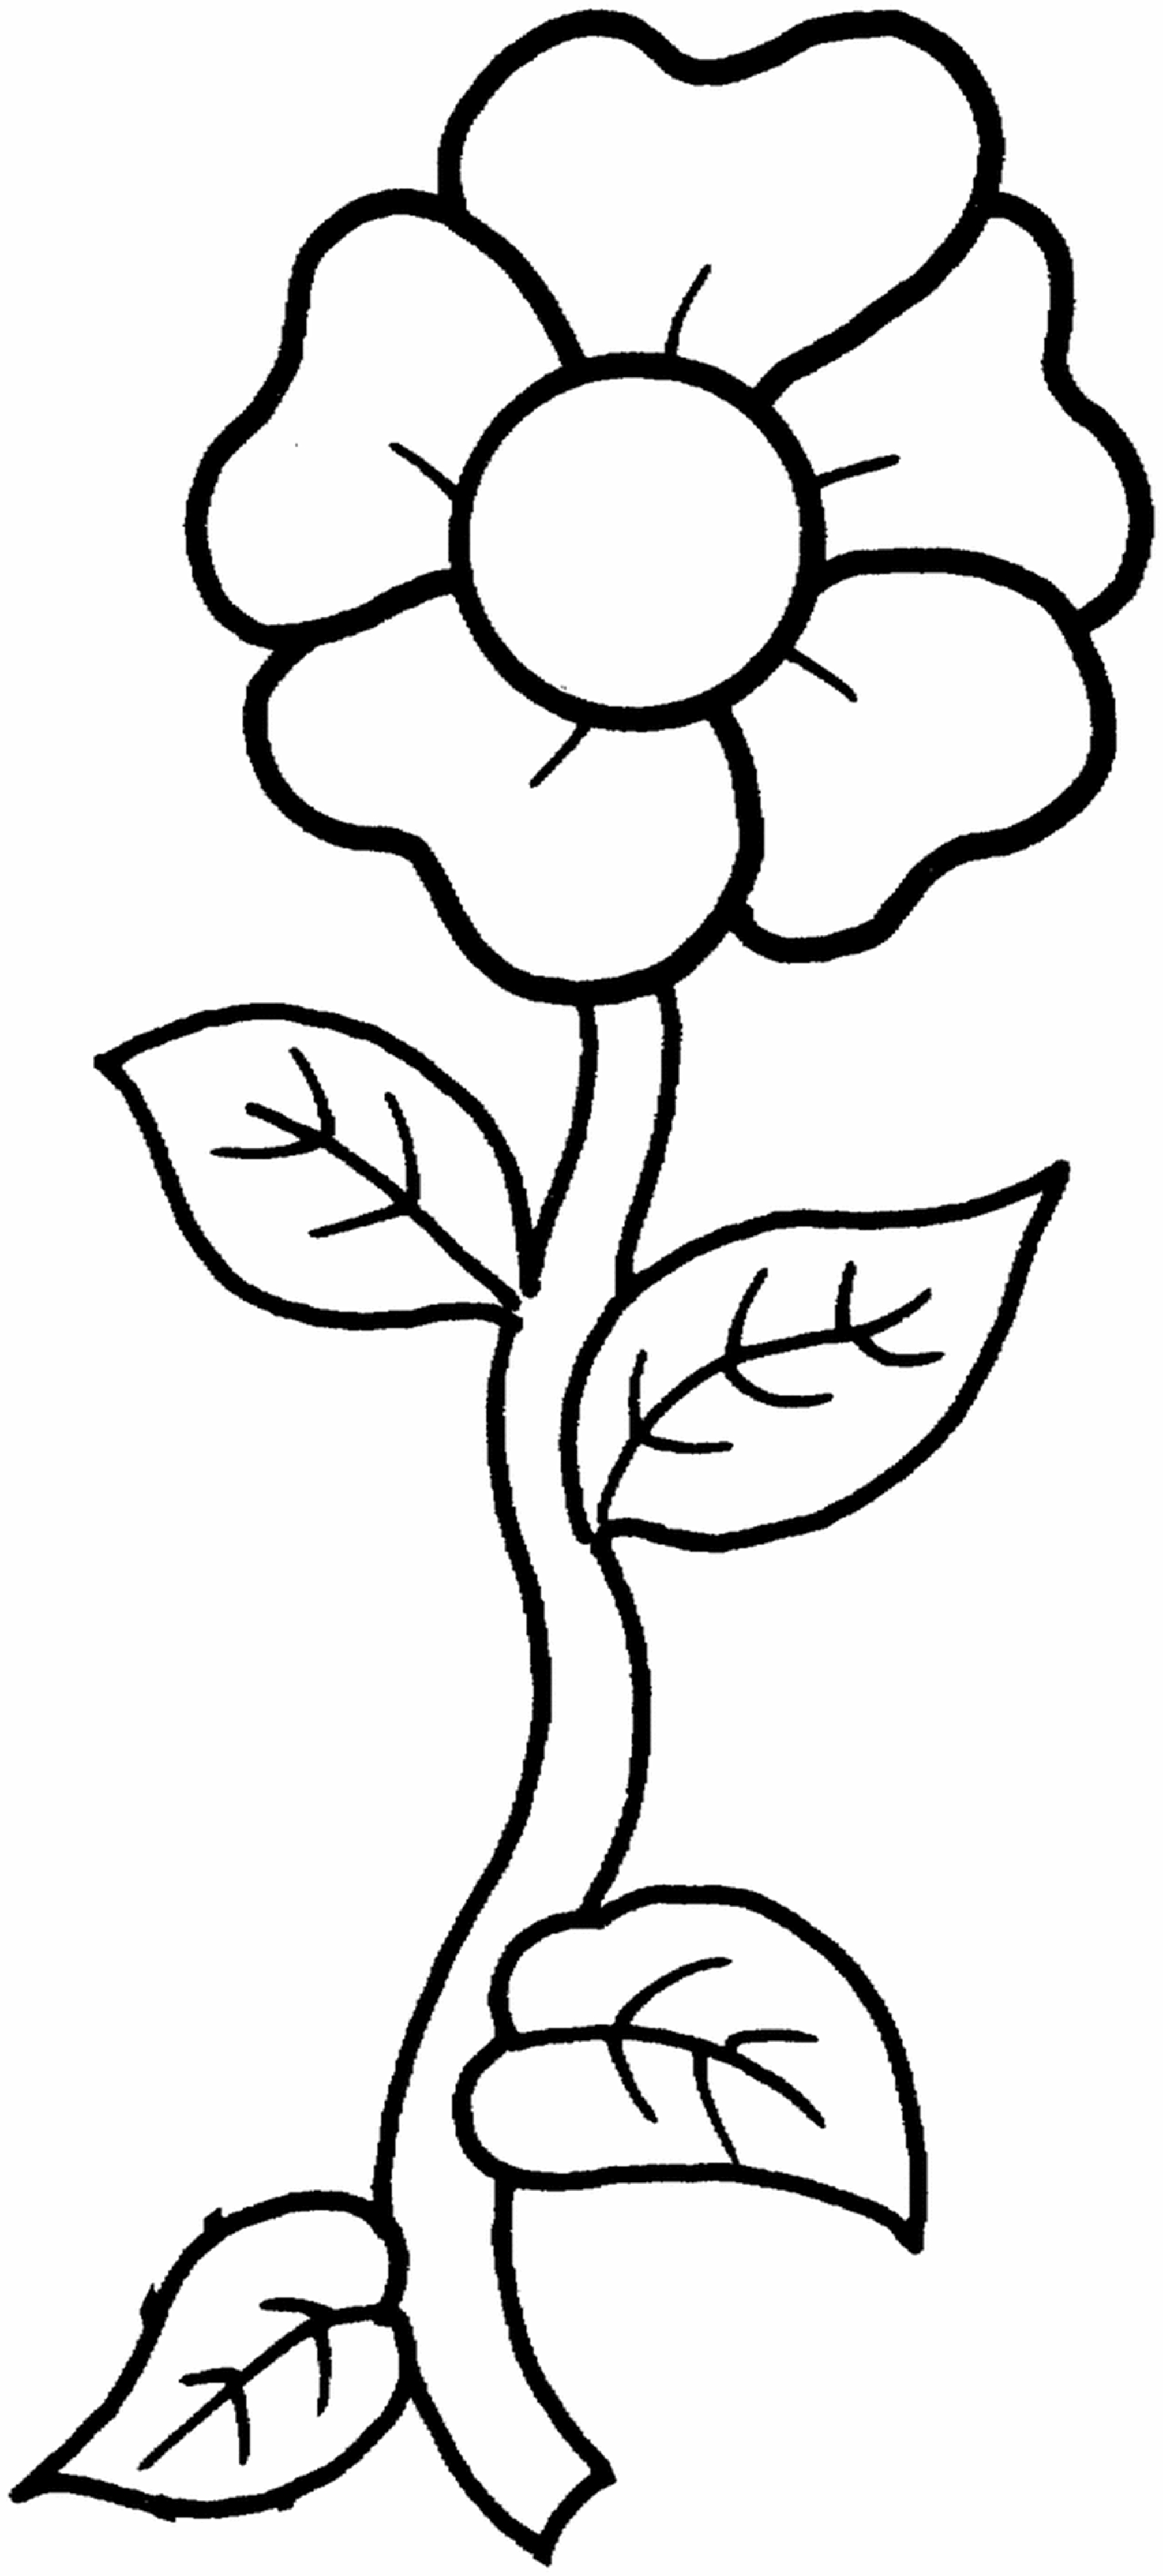 a flower coloring page cartoon flowers coloring pages cartoon coloring pages flower page a coloring